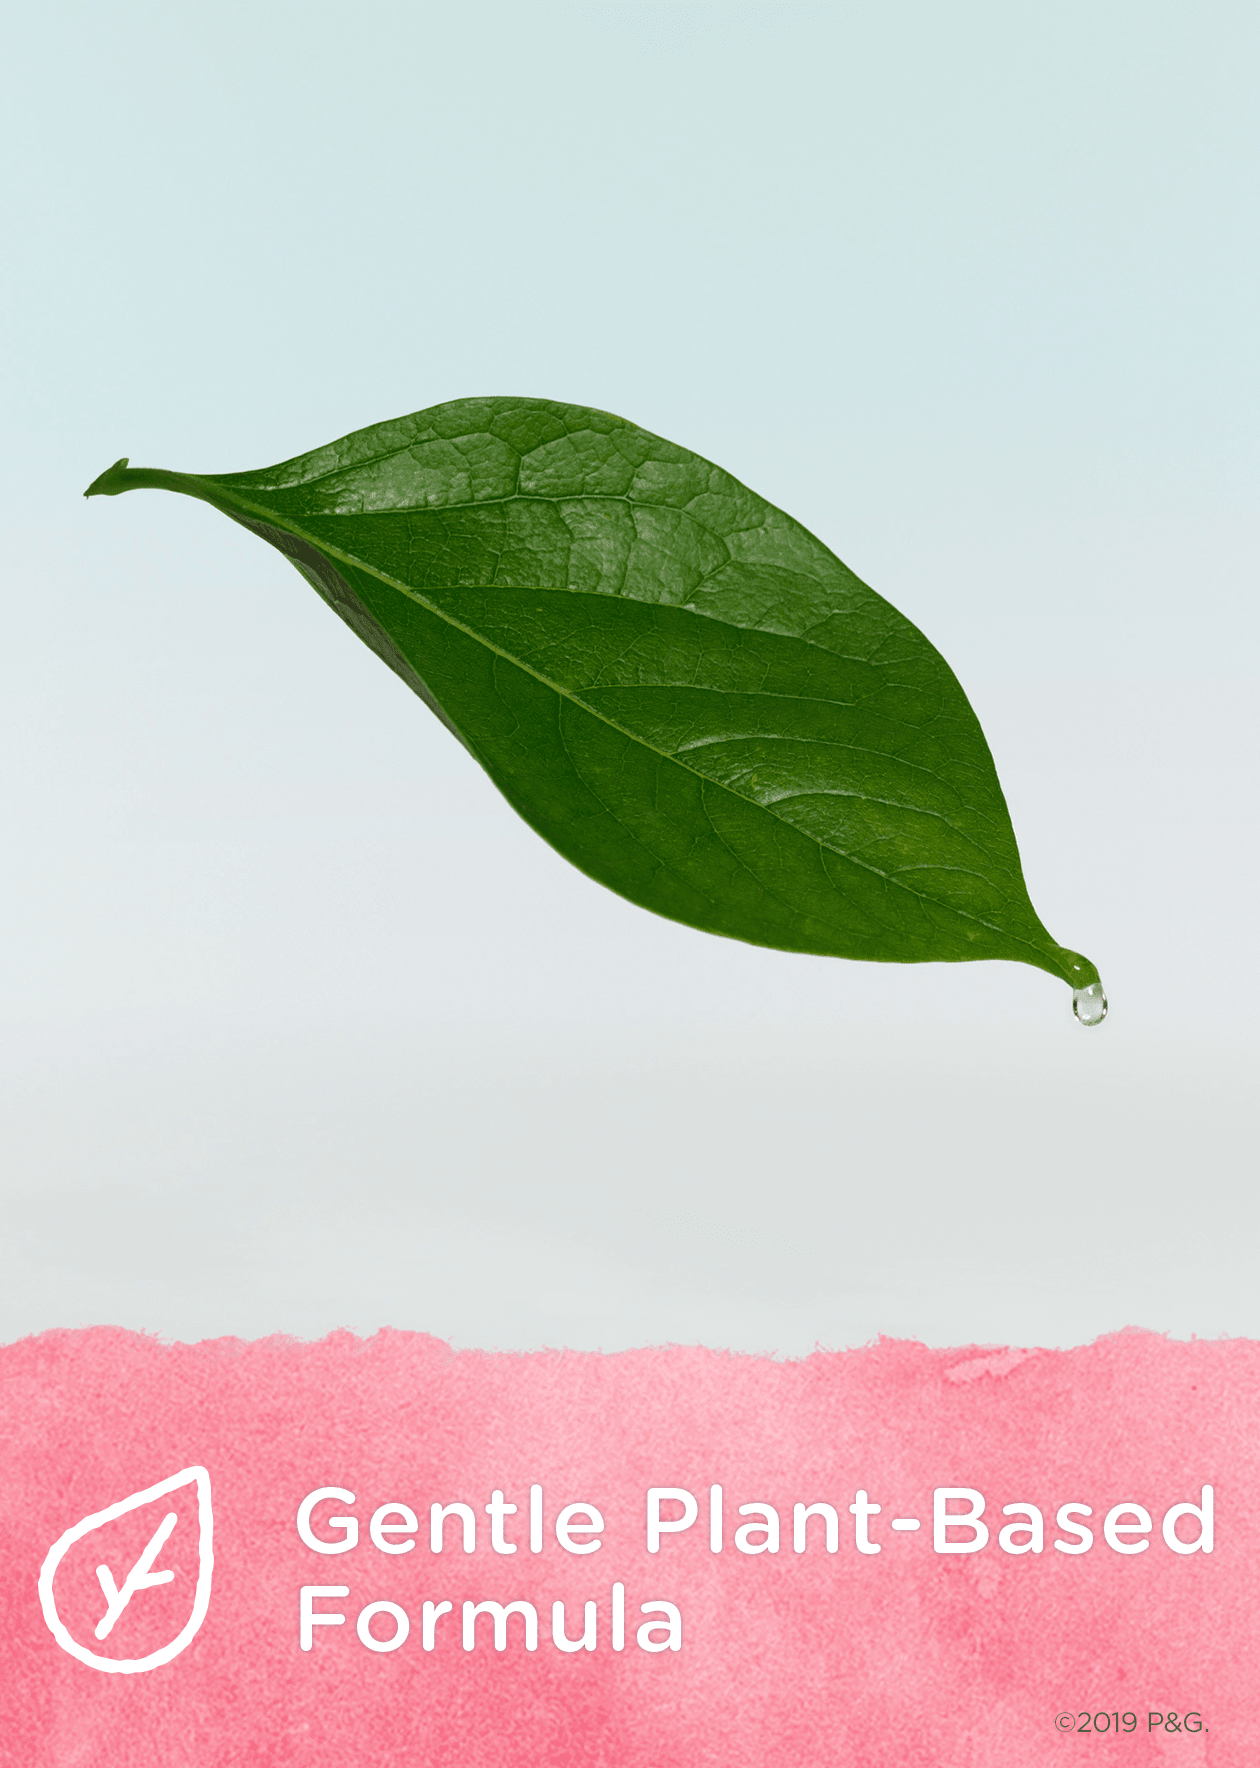 Gentle Plant-based Formula (Leaf/nature)